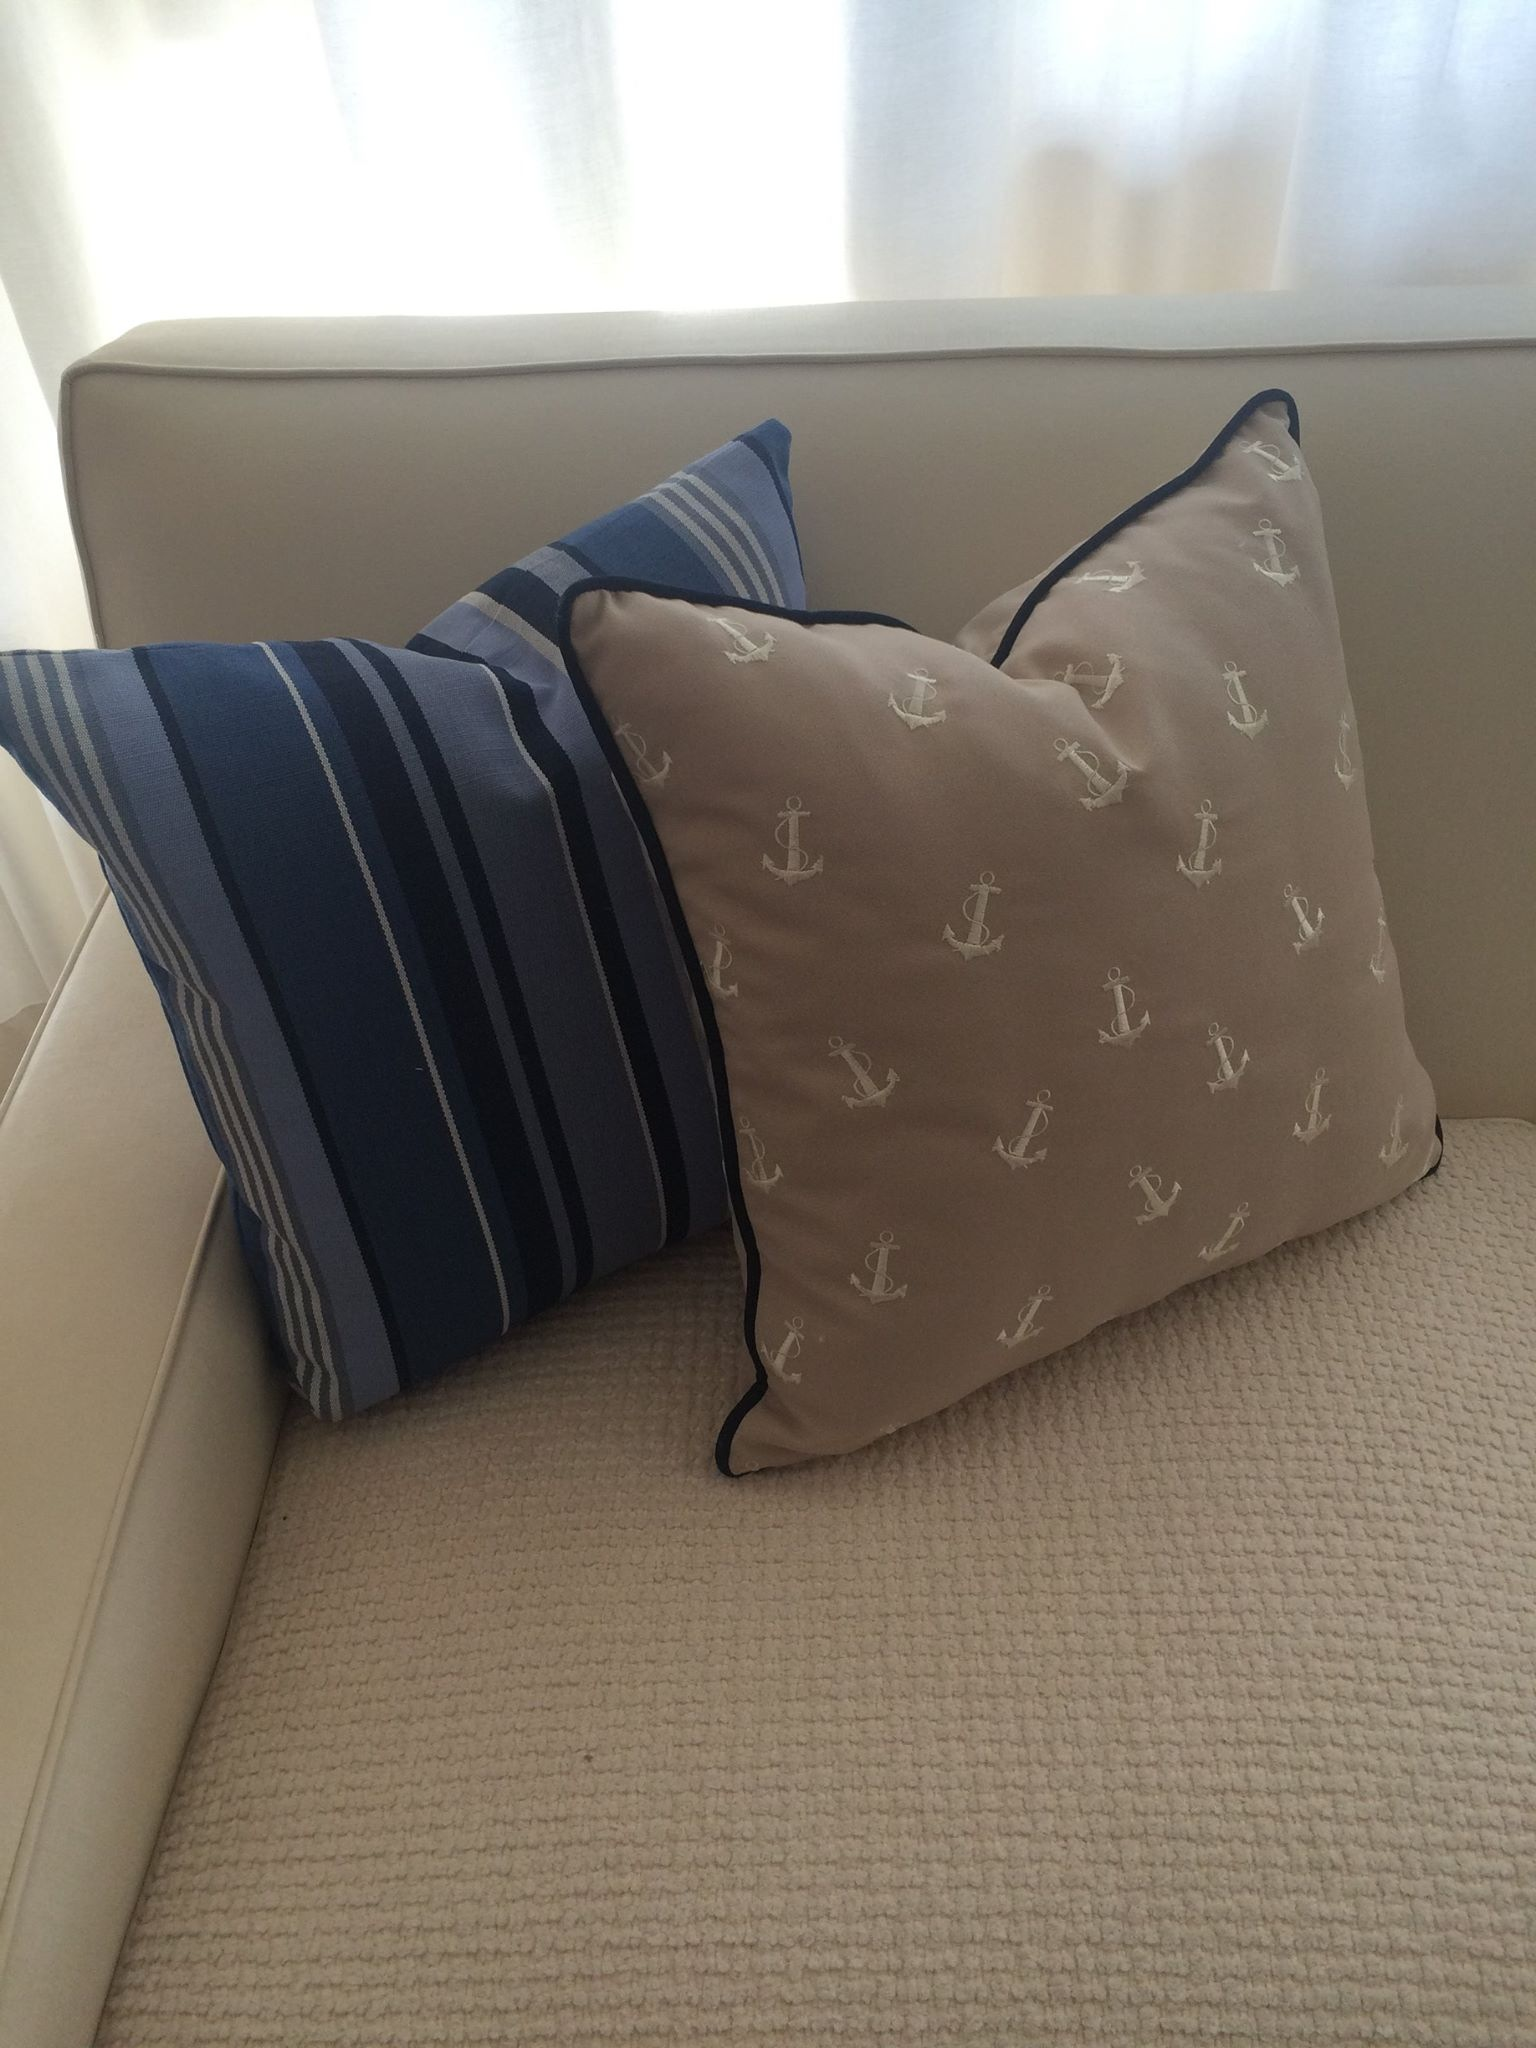 Exterior throw pillows